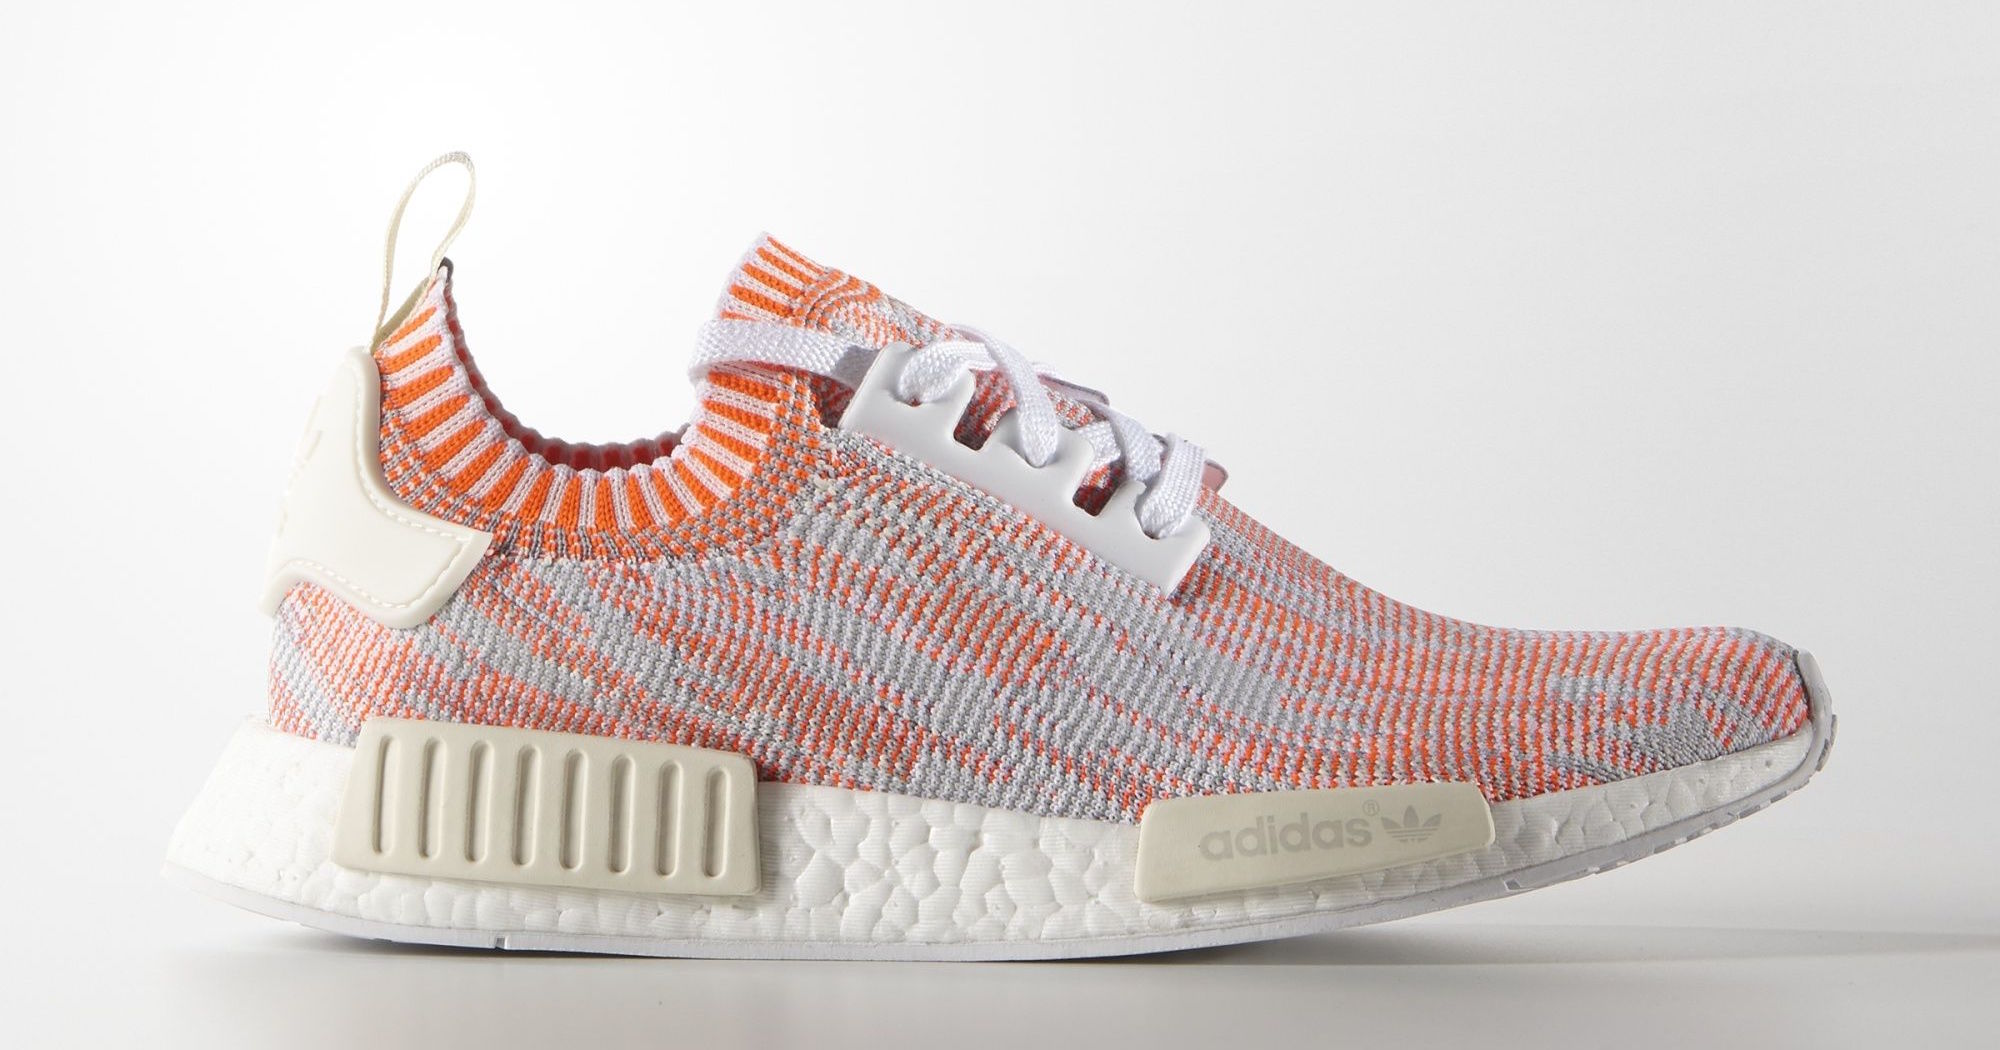 Adidas NMD R1 Primeknit Solar Red Camo Release Links 531edfc99